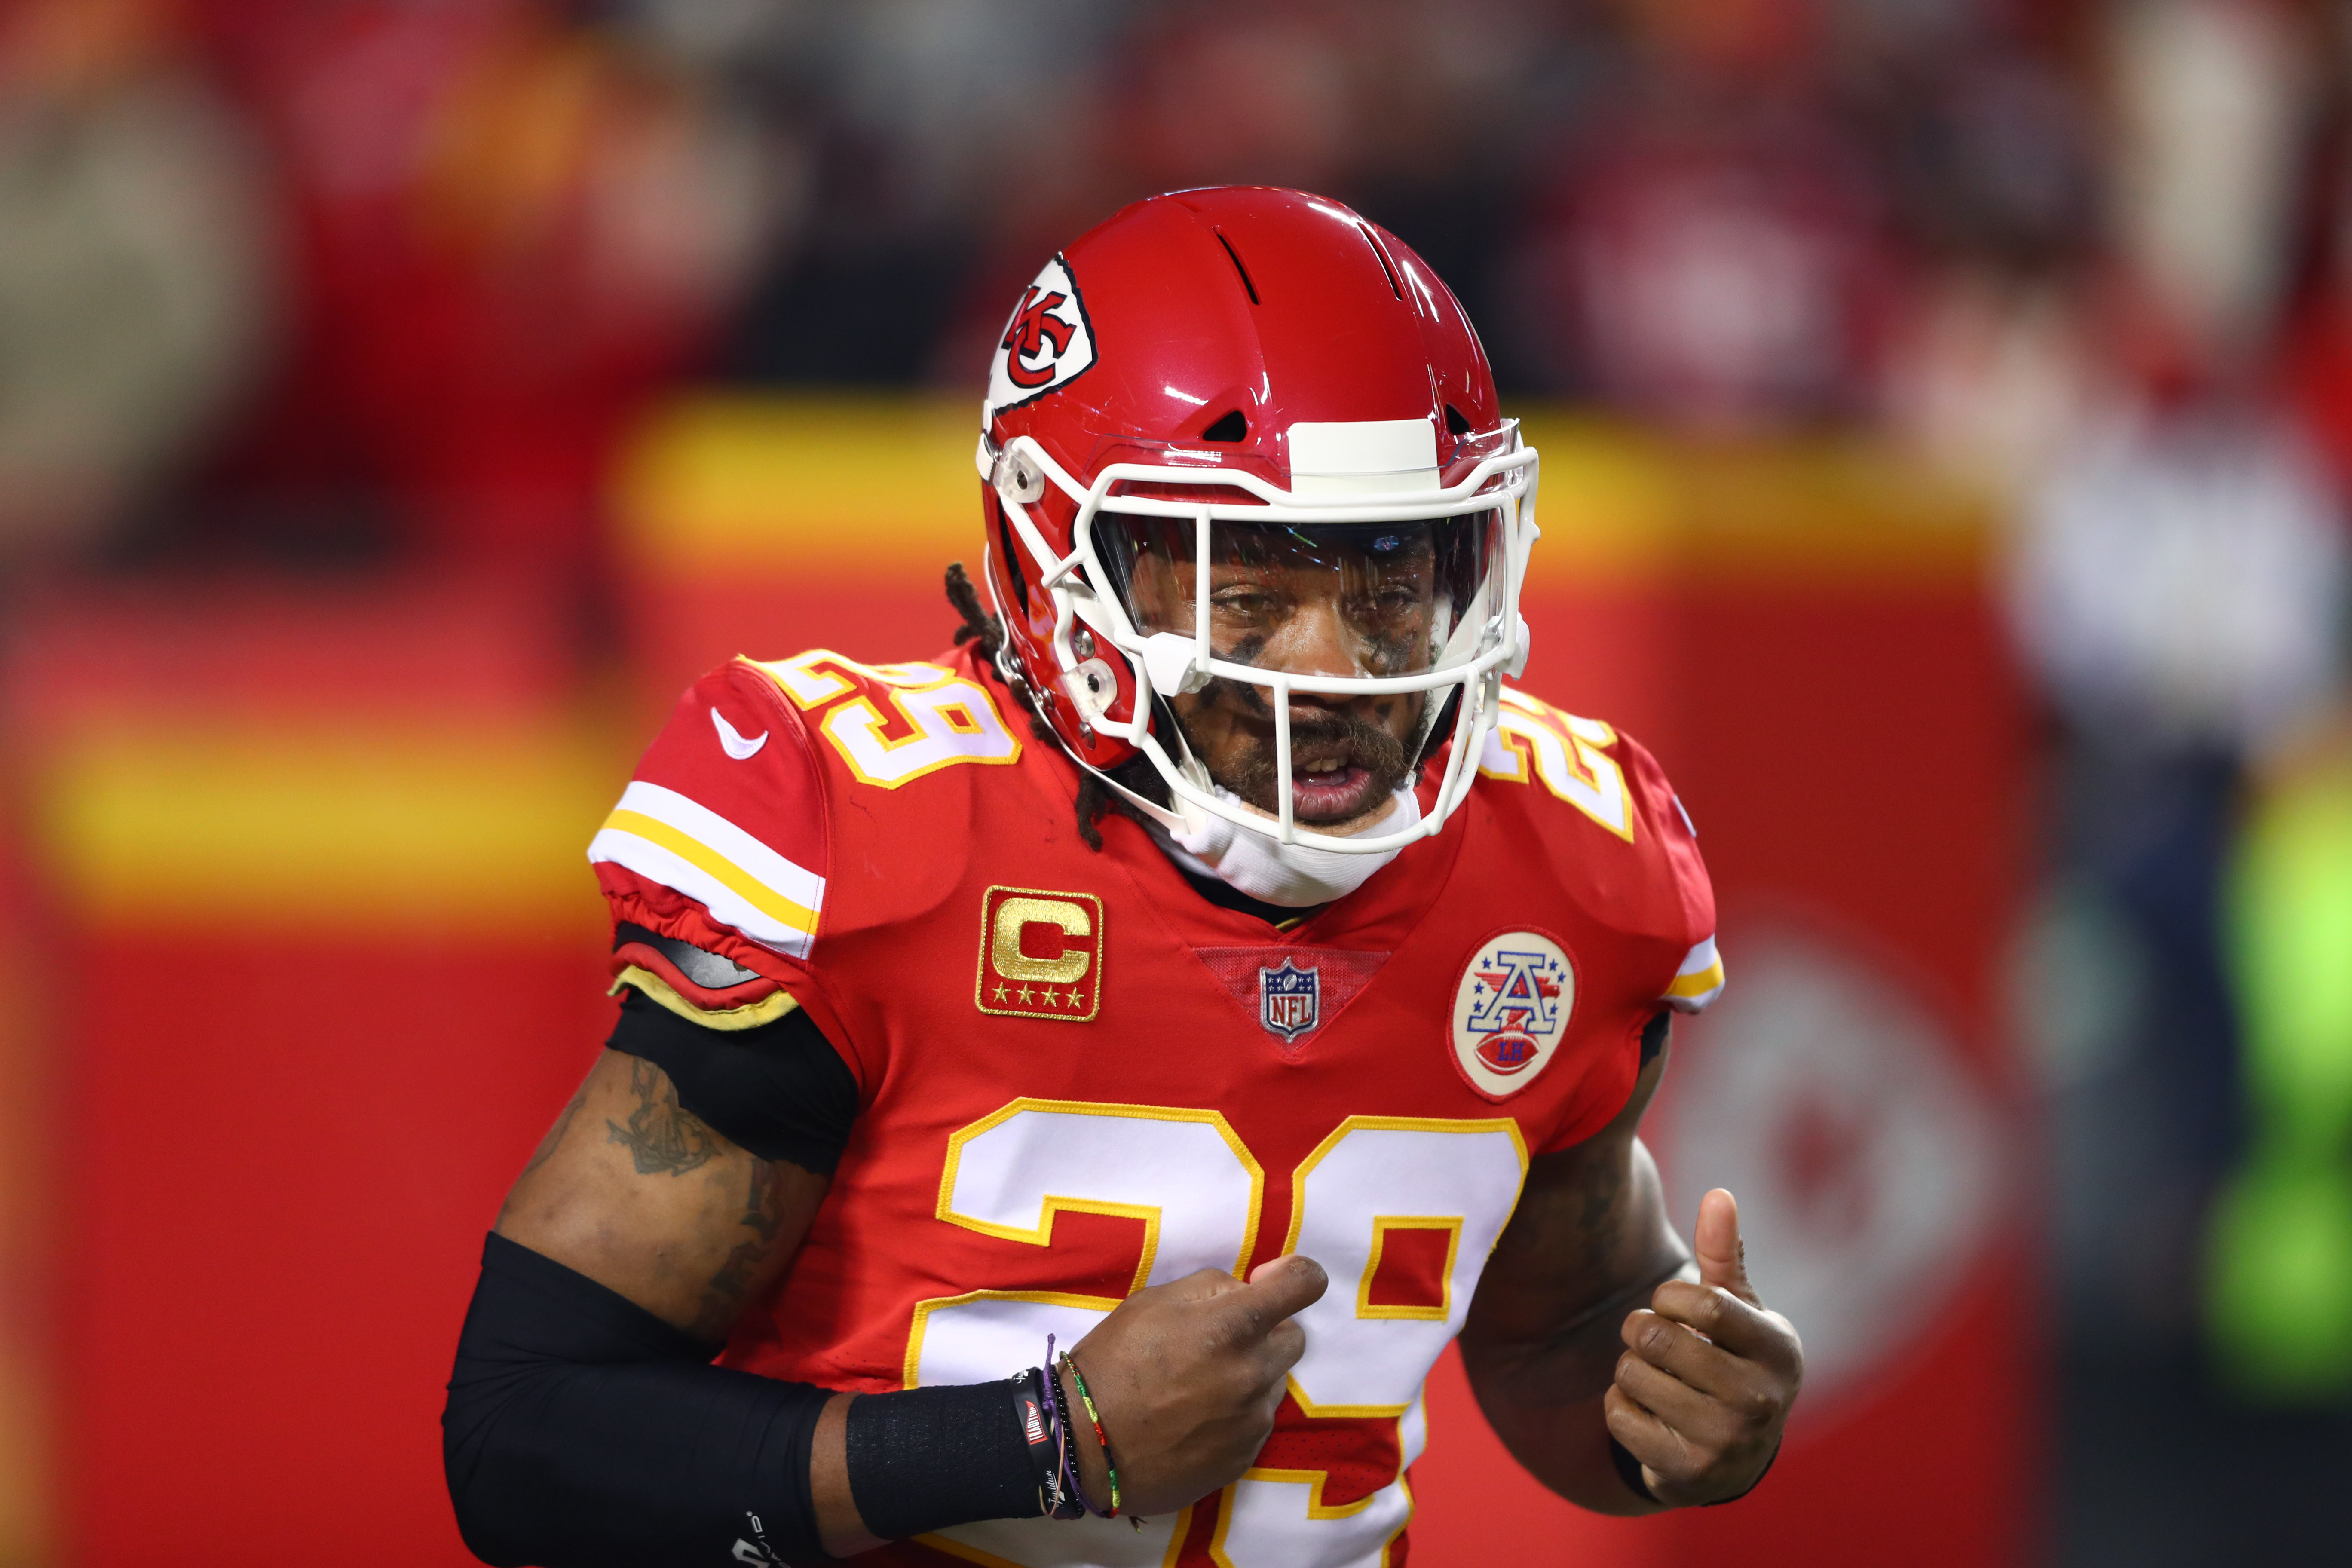 WATCH: Desperate for defensive spark, Falcons should again explore signing Eric Berry